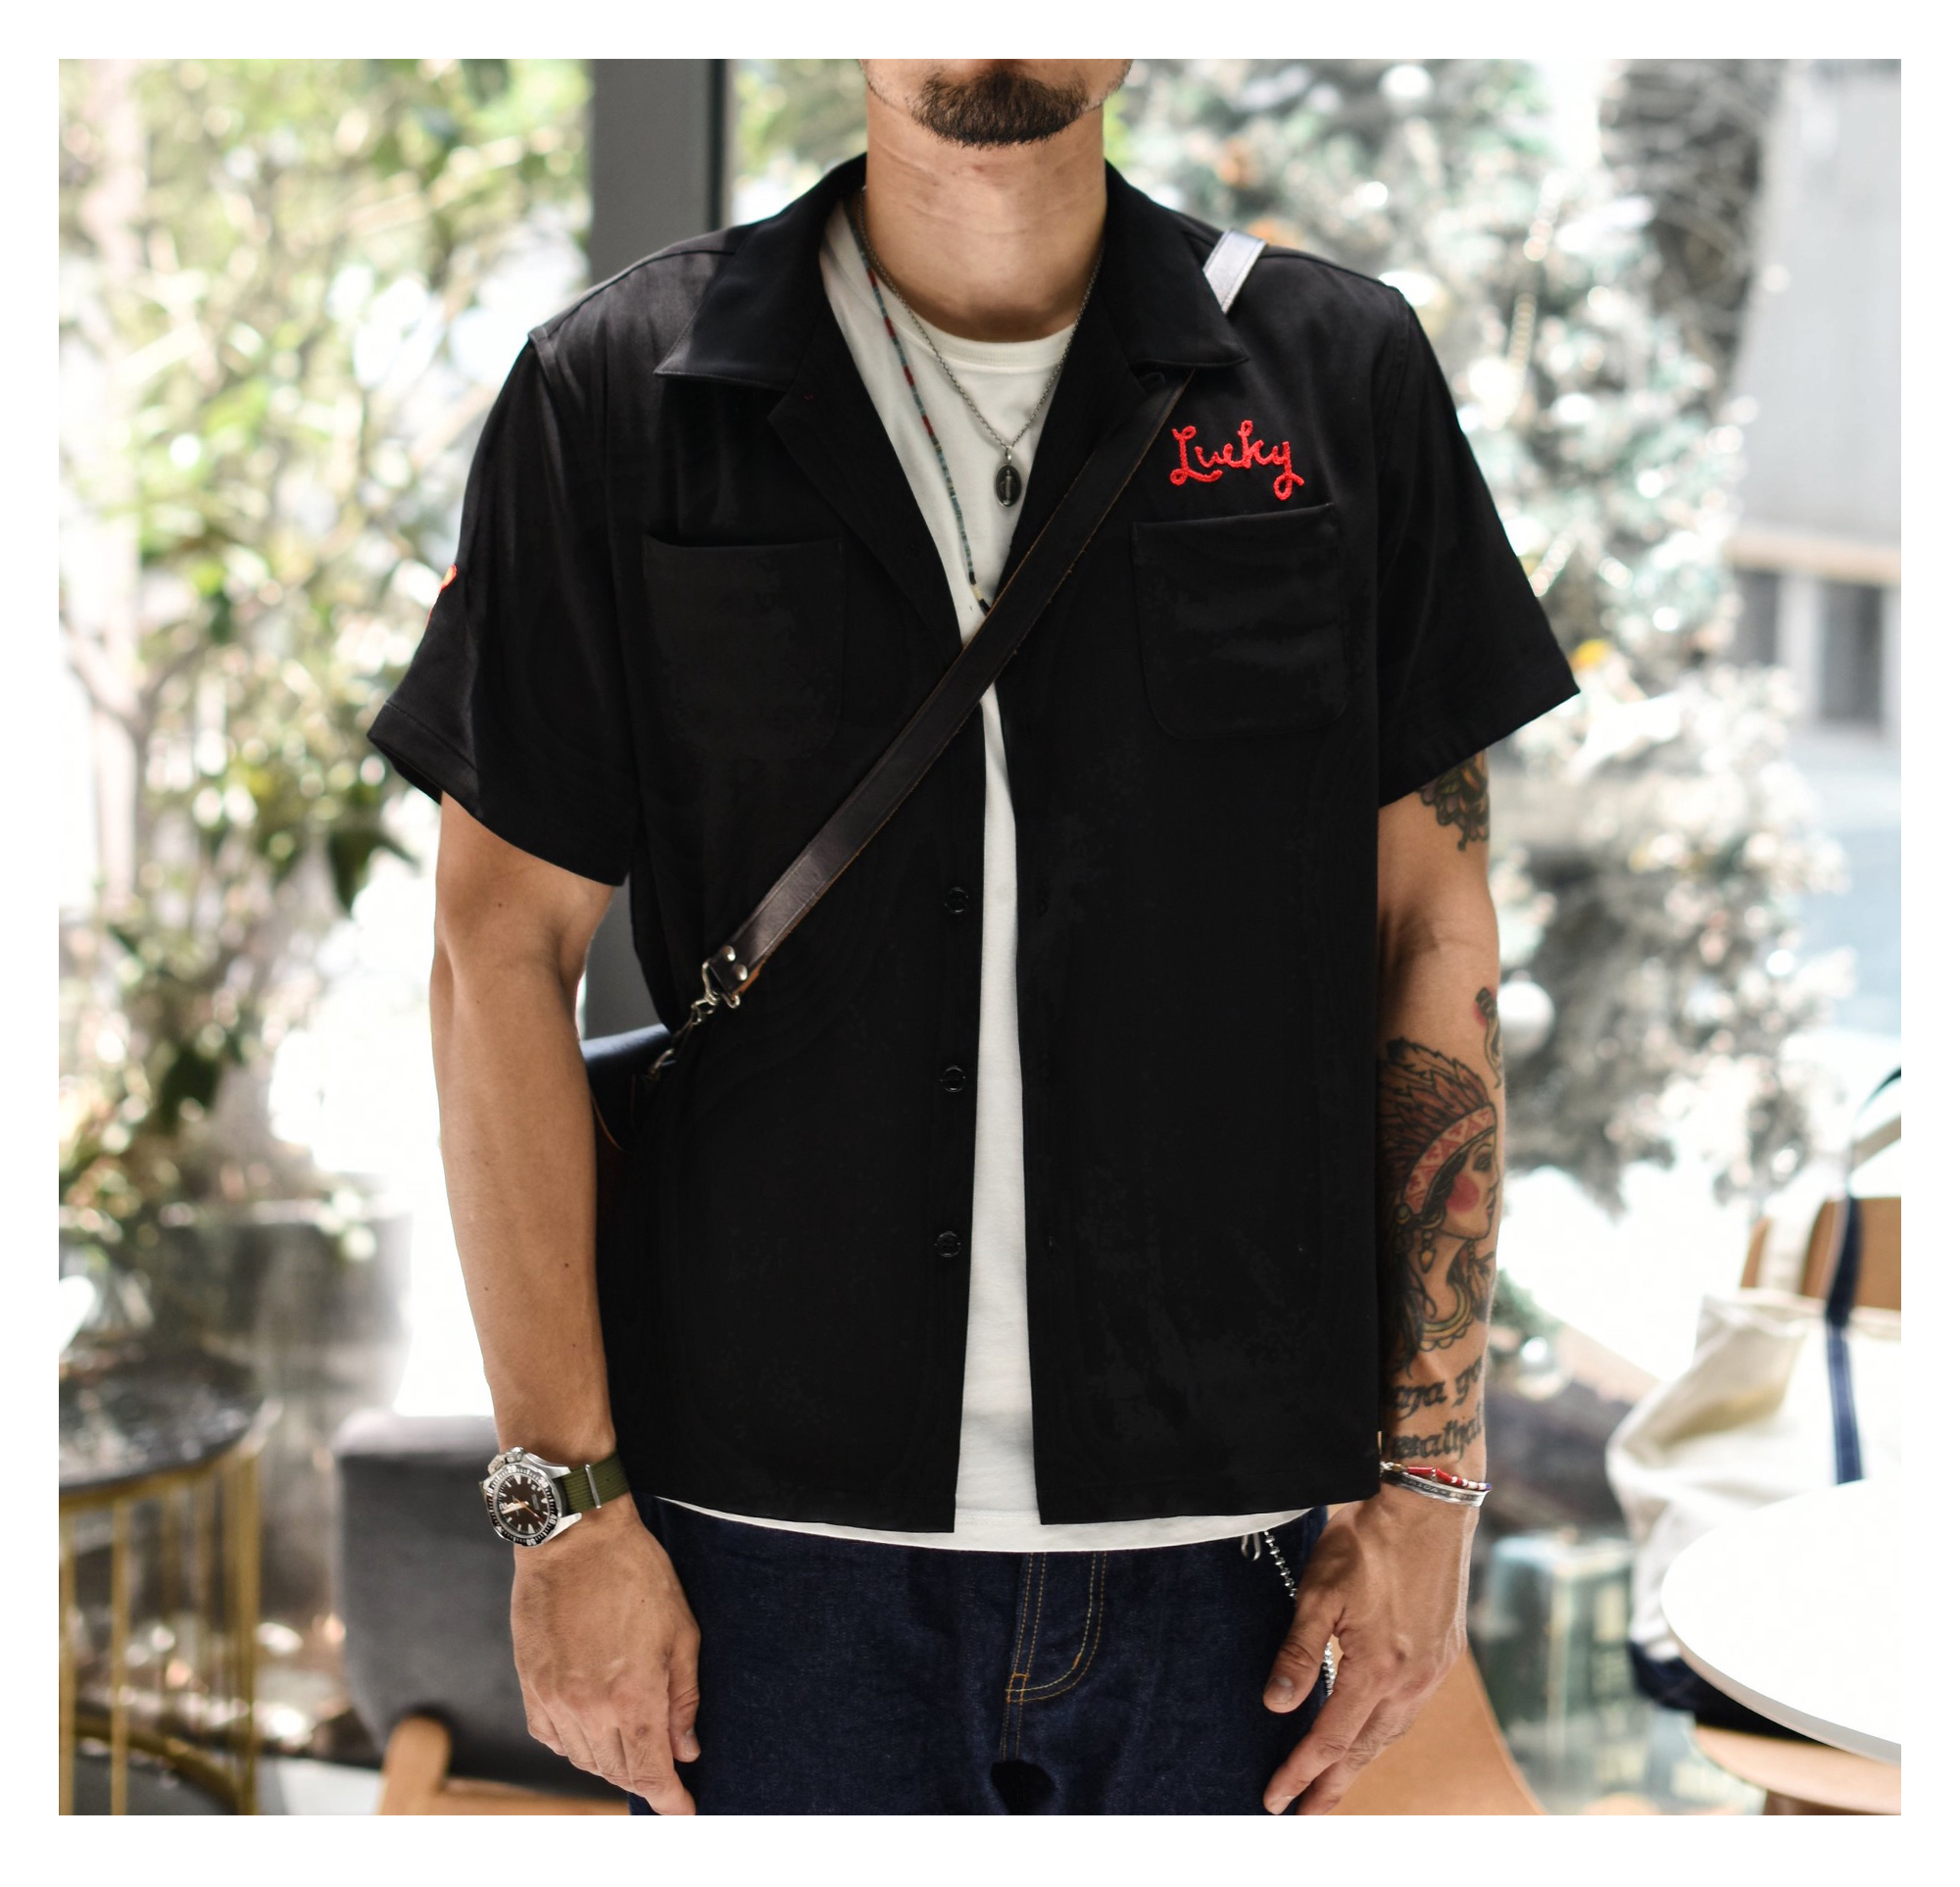 SauceZhan 50's American Bowling Shirt Shirt Men Vintage Casual Shirt for Summer Embroidery Black Breathable High Quality